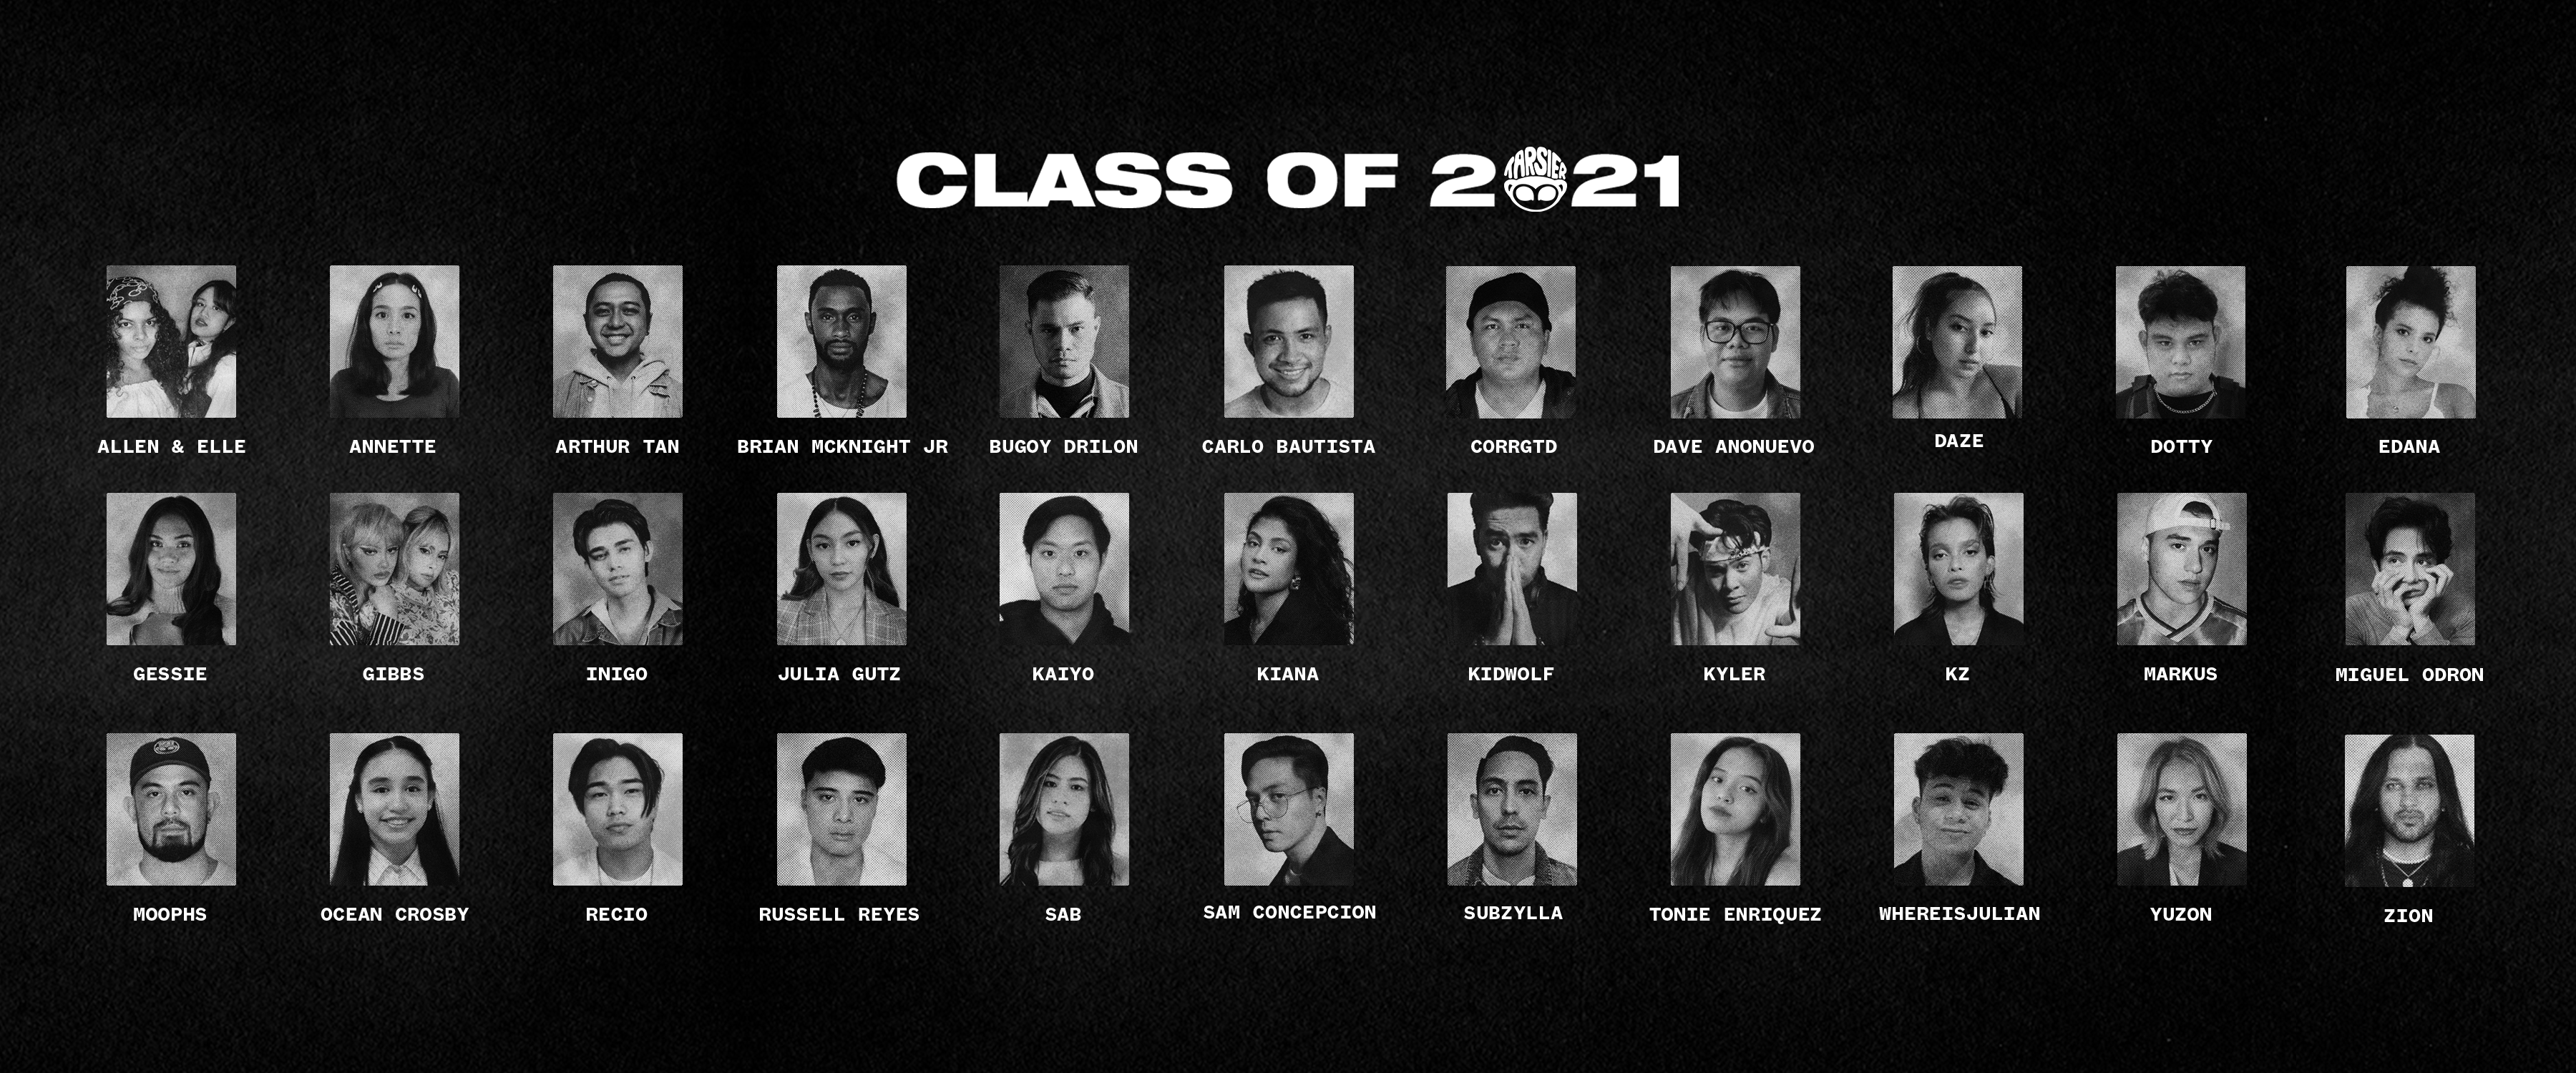 Tarsier Records Launches New Acts to Watch Out for with Class of 2021